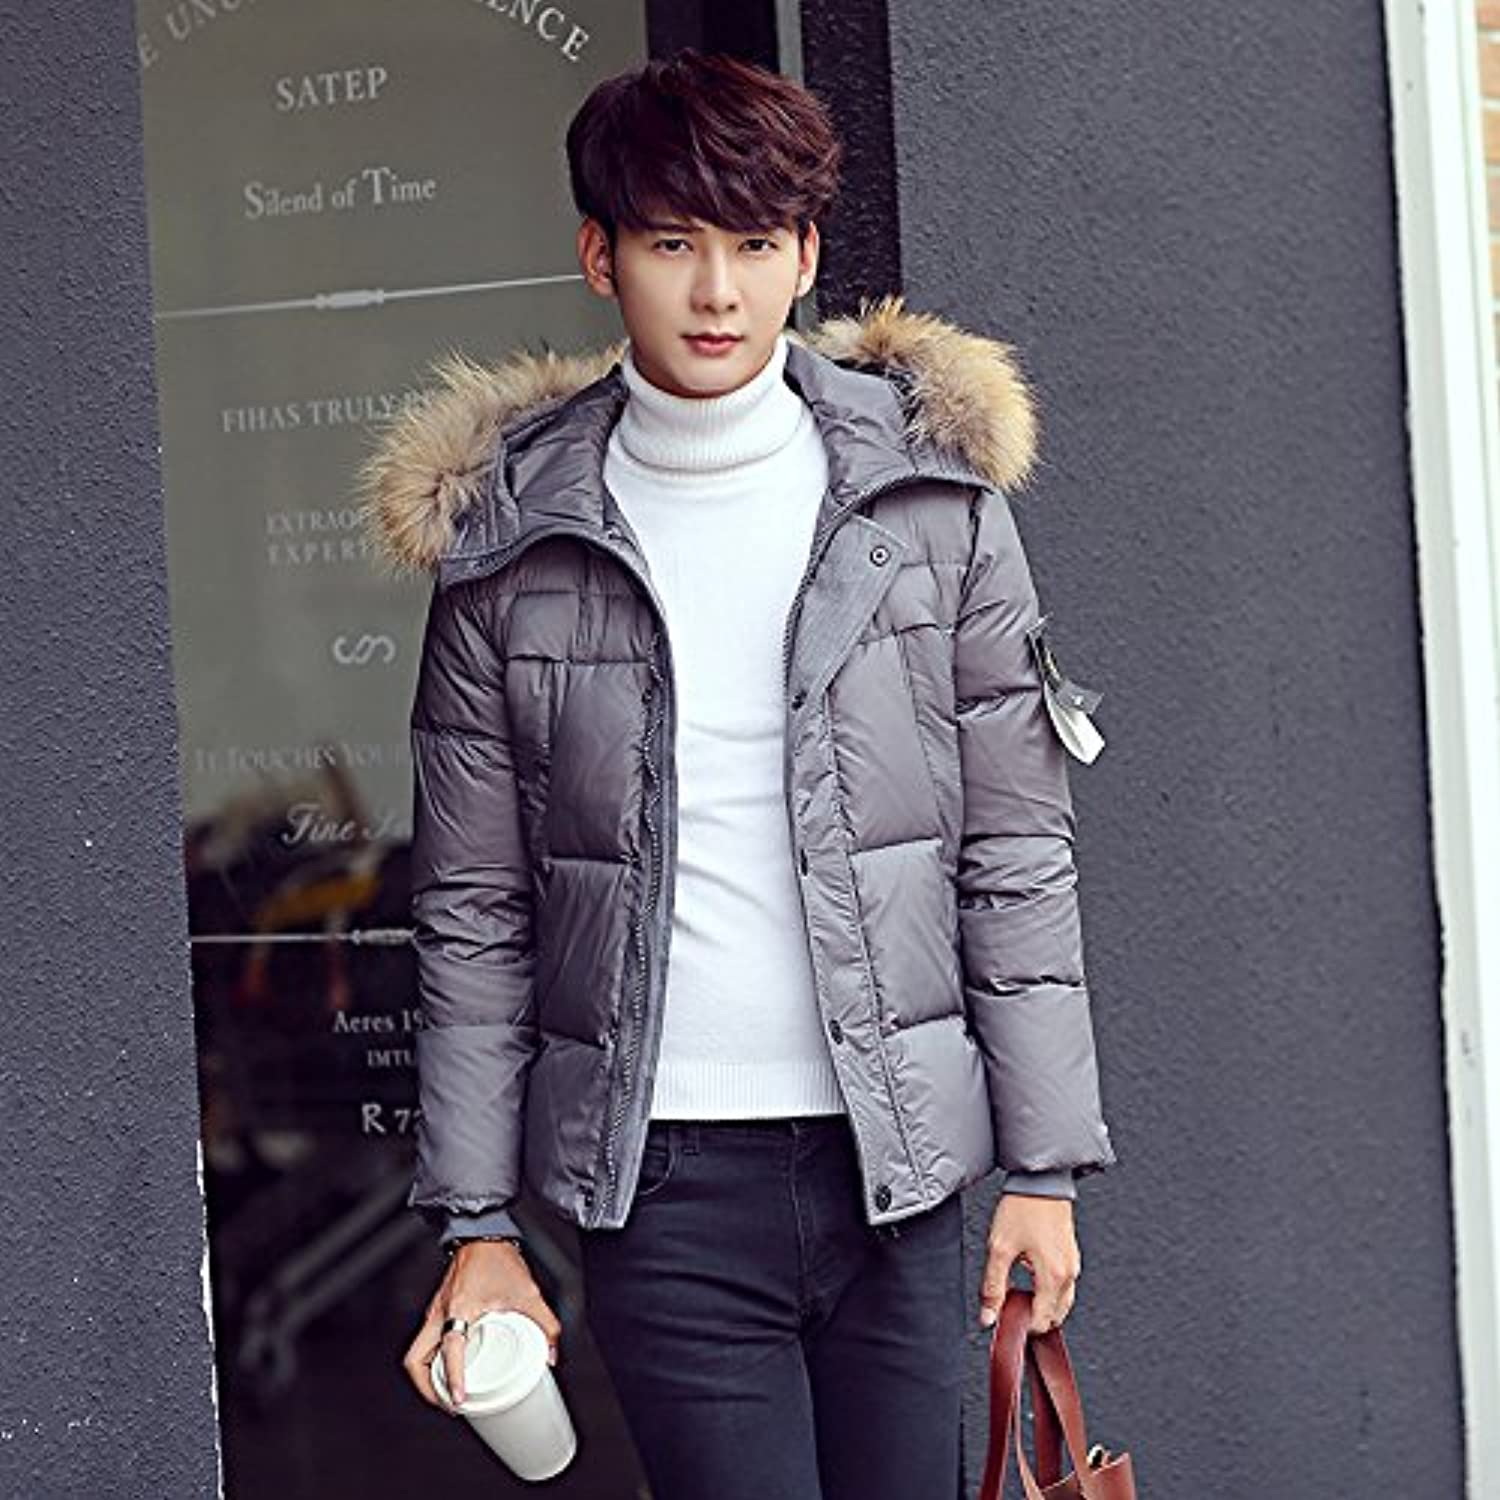 Lsm-Coat Men's Winter Stand Collar Warm Hooded Quilted Padded Puffer Jacket Outwear Coat